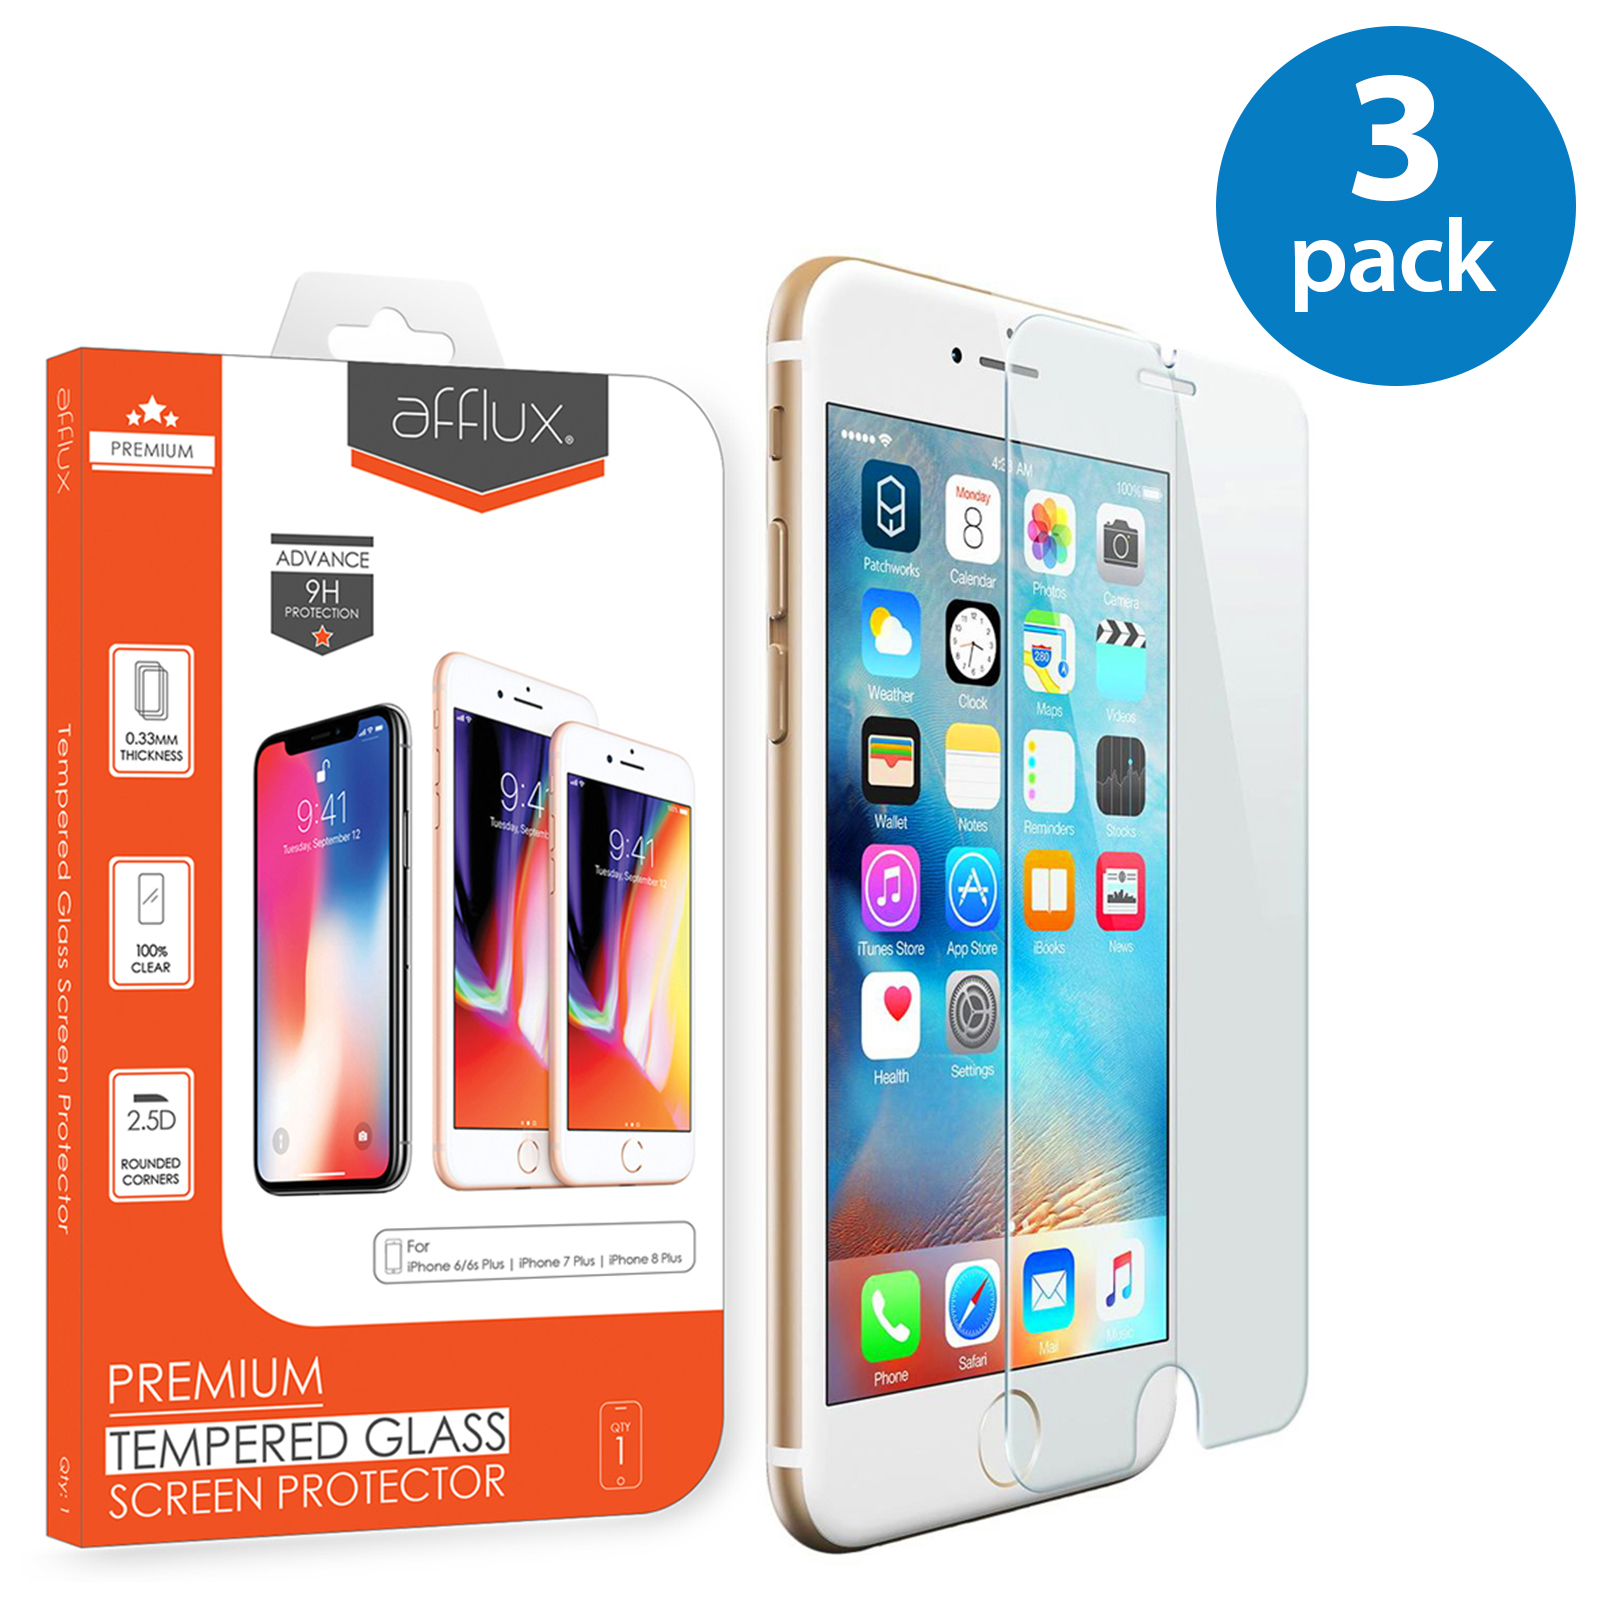 3x Afflux Apple iPhone 6 Plus Tempered Glass Screen Protector Film Guard Case Friendly For iPhone 6 Plus